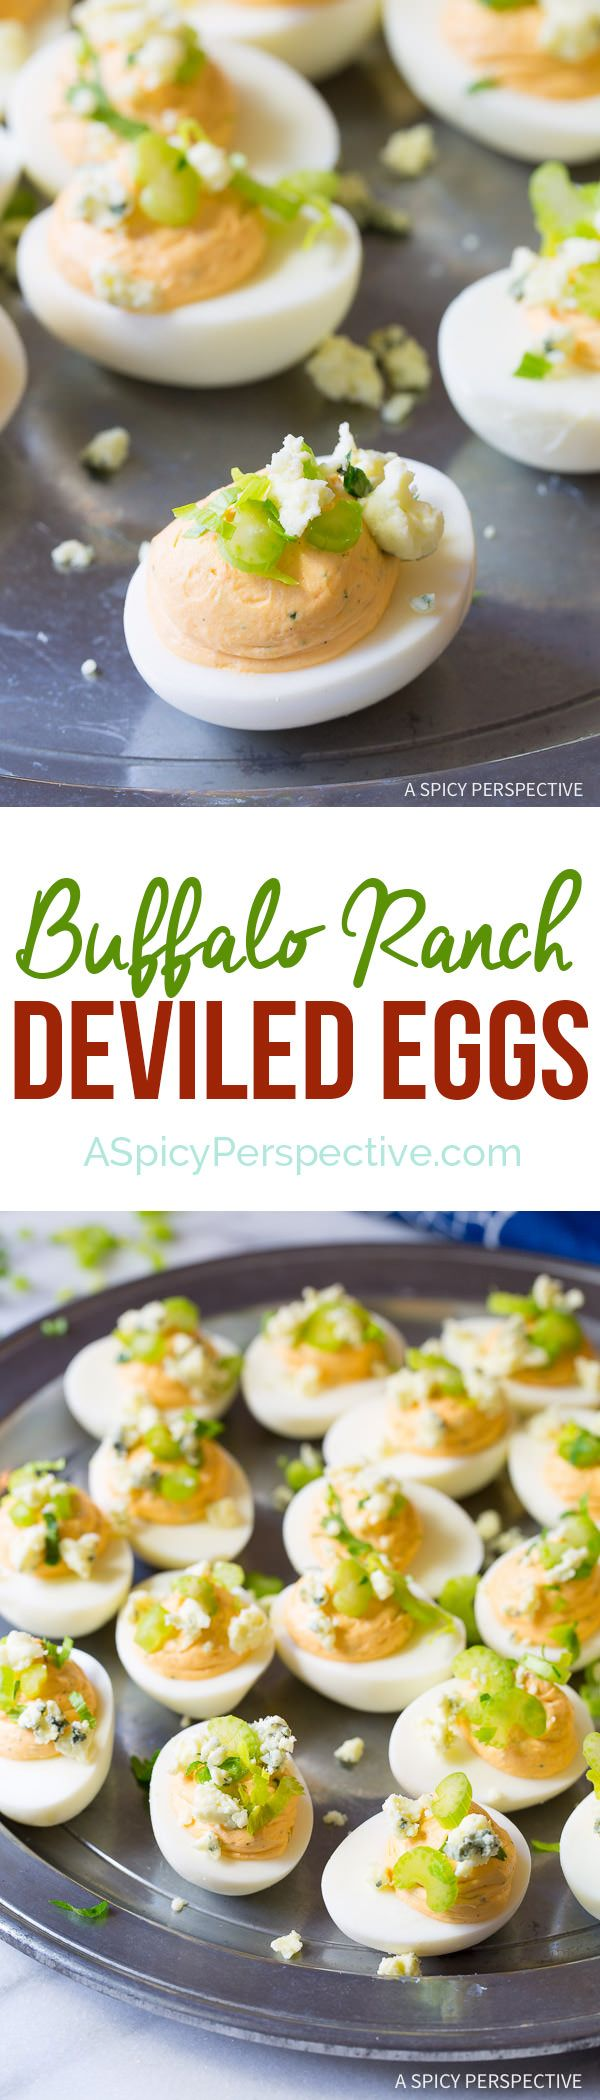 Bold Creamy 6-Ingredient Buffalo Ranch Deviled Eggs Recipe | ASpicyPerspective.com